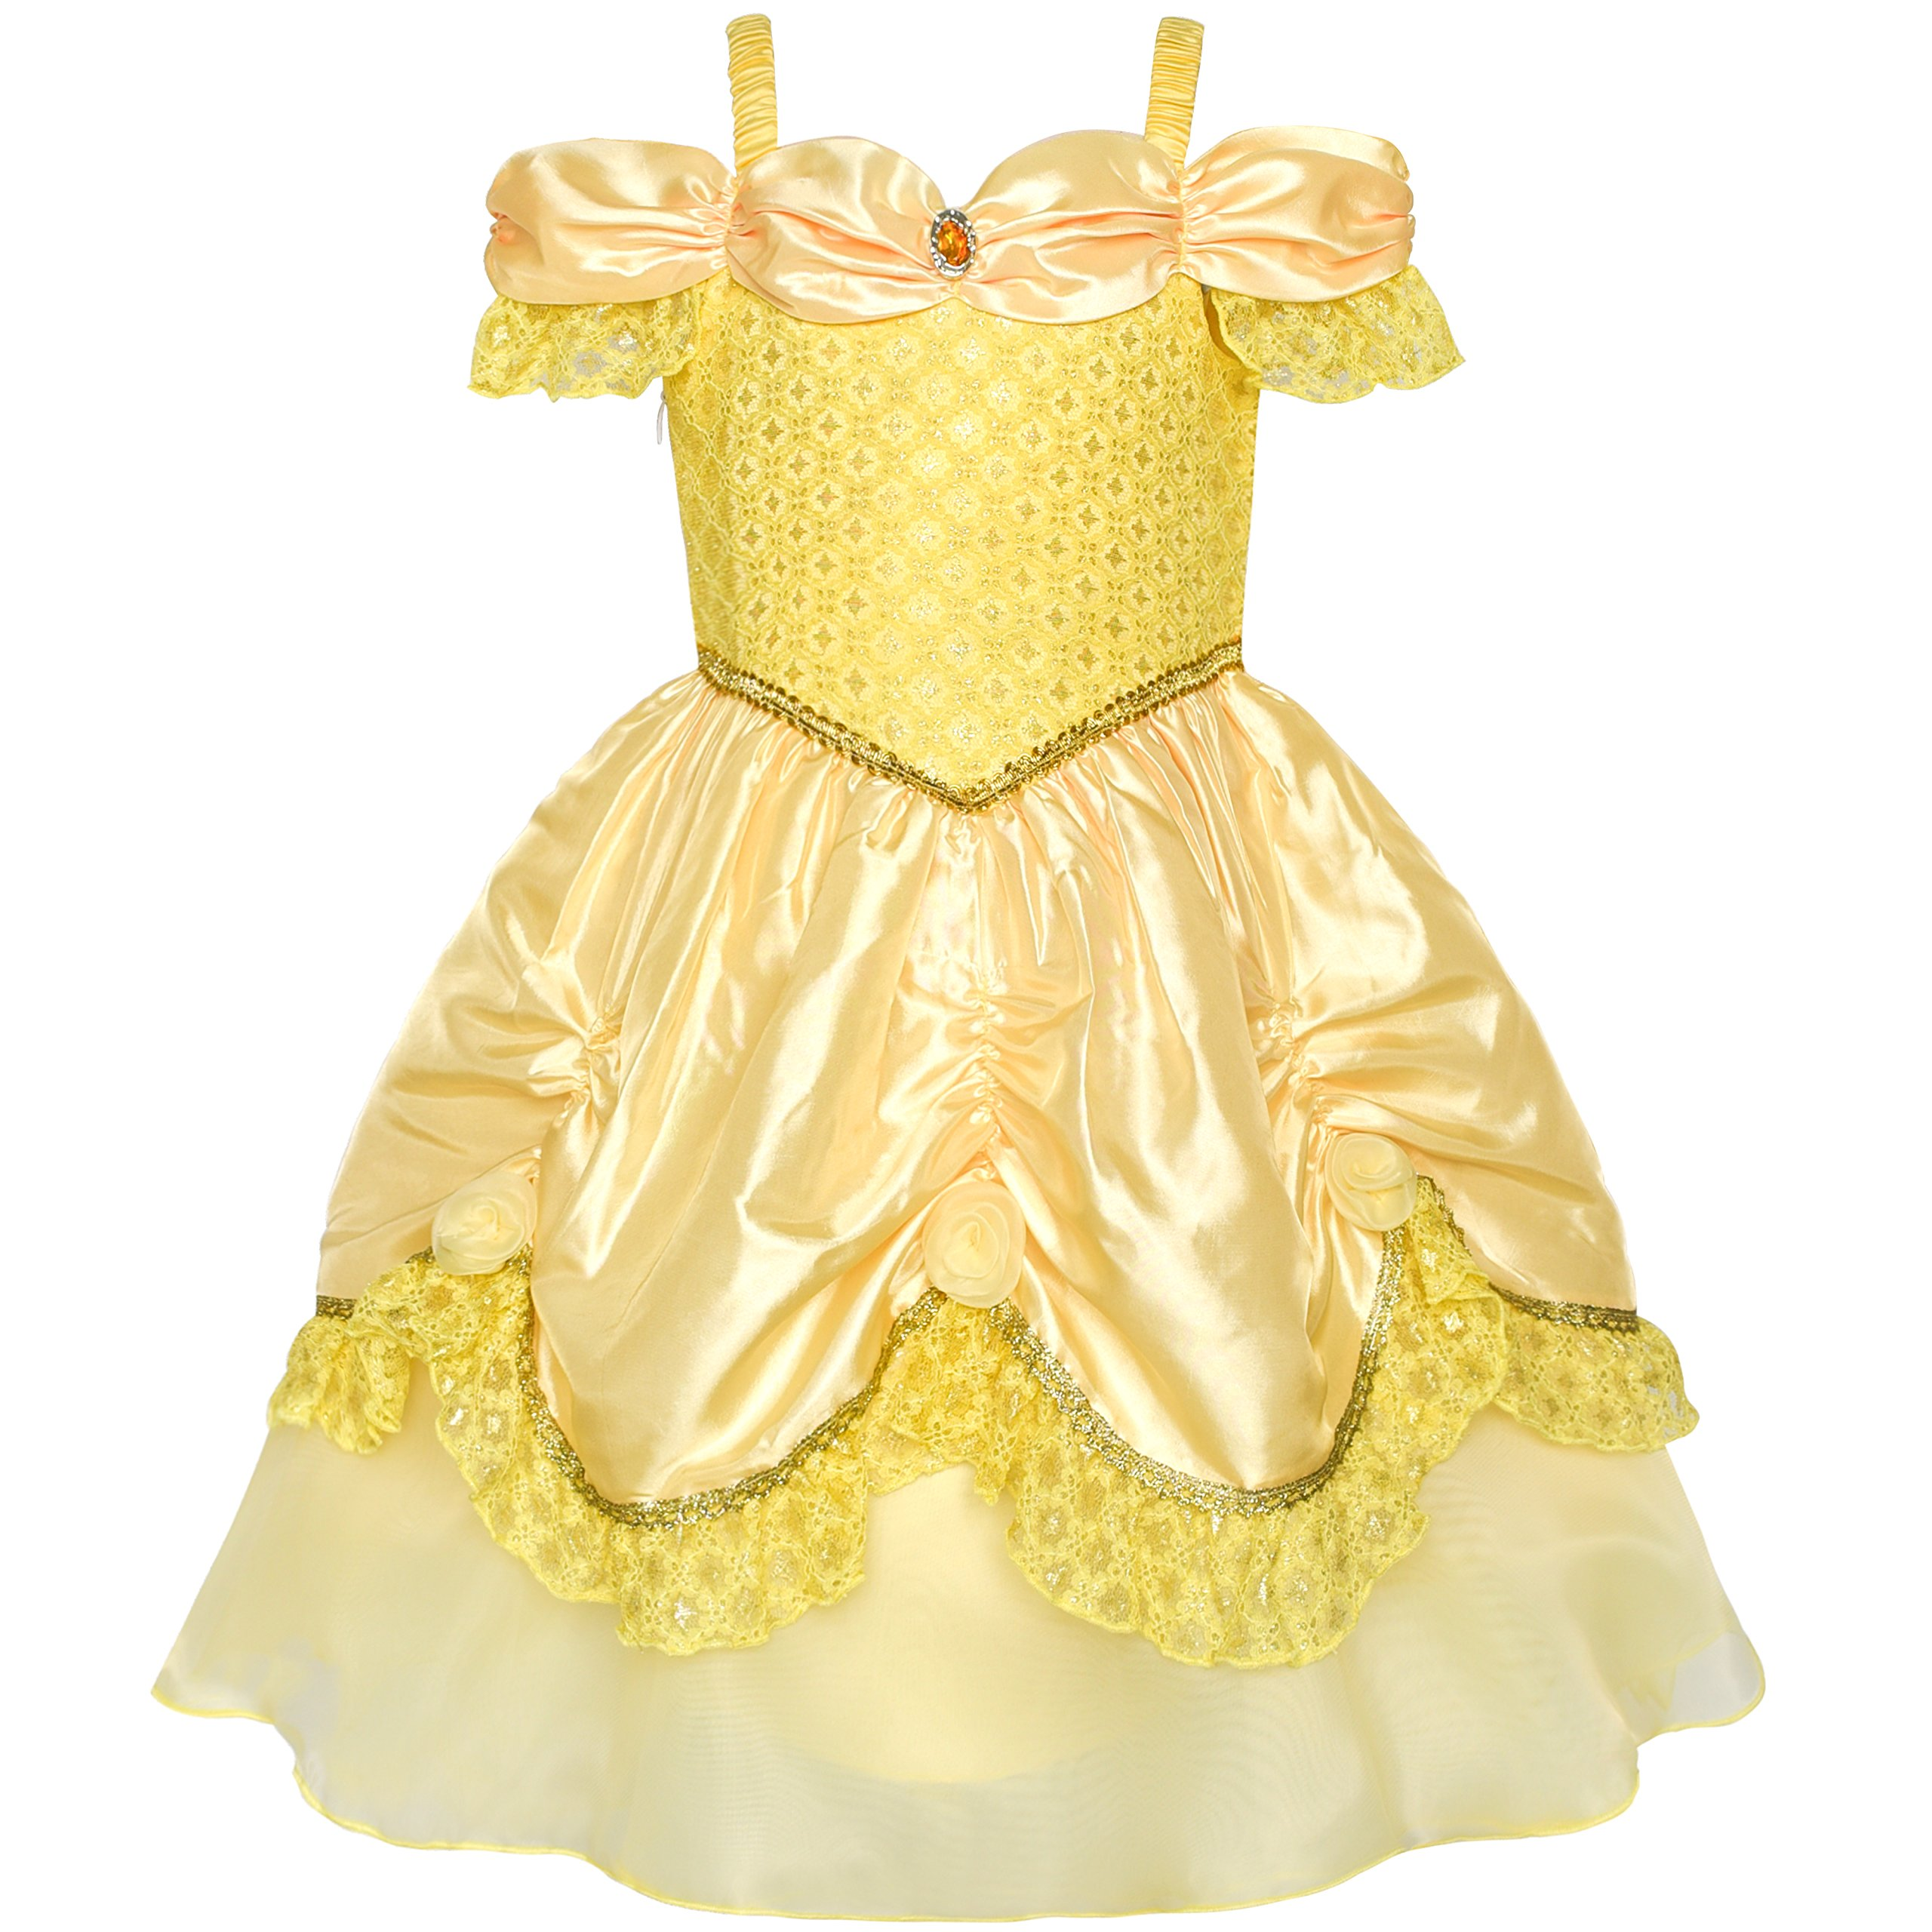 Girls Dress Yellow Princess Belle Costume Birthday Party Size 6 by Sunny Fashion (Image #1)